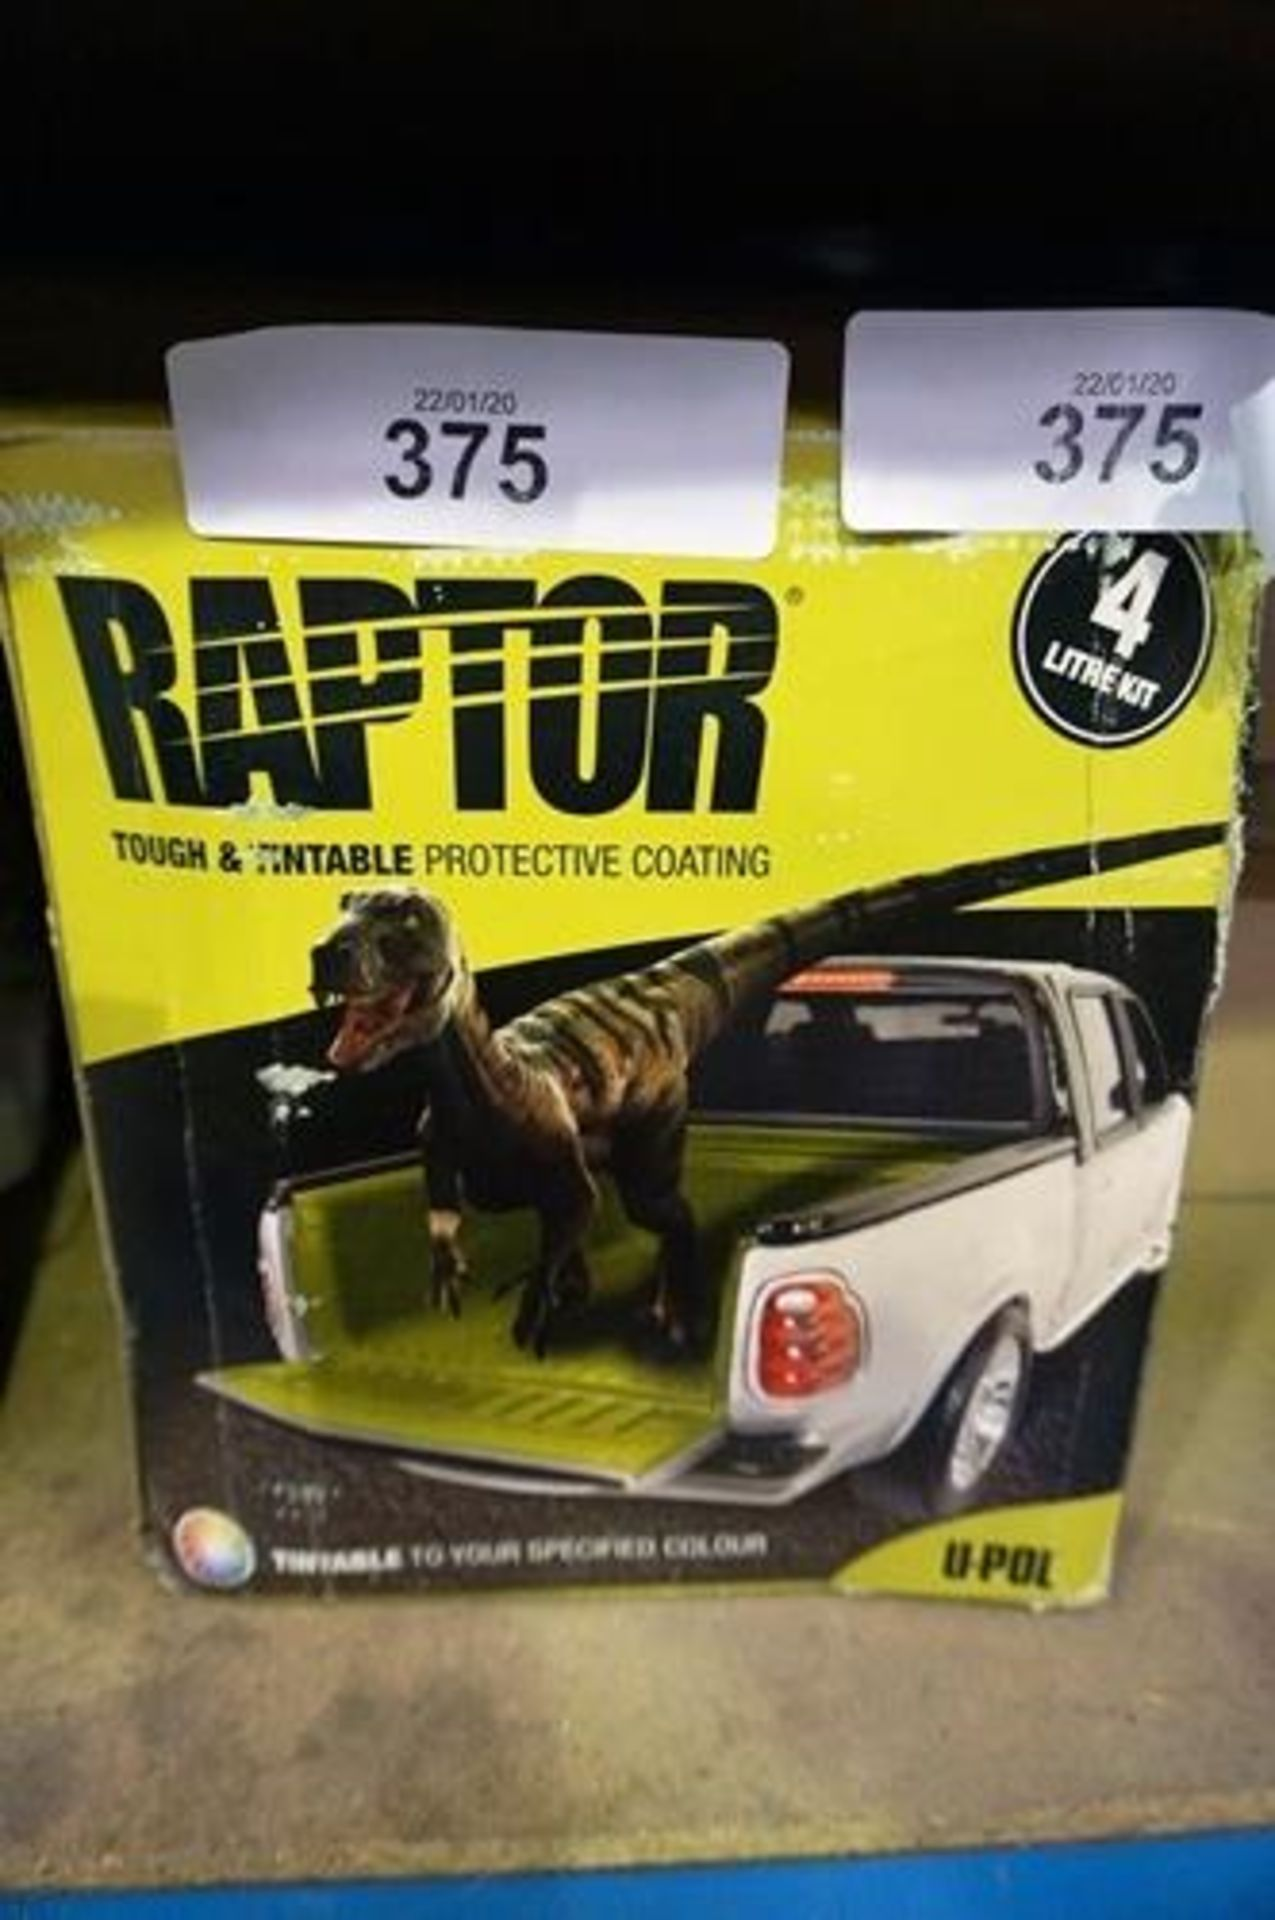 Lot 375 - Raptor tough and tintable pick-up truck protective coating kit - Sealed new (GS11)